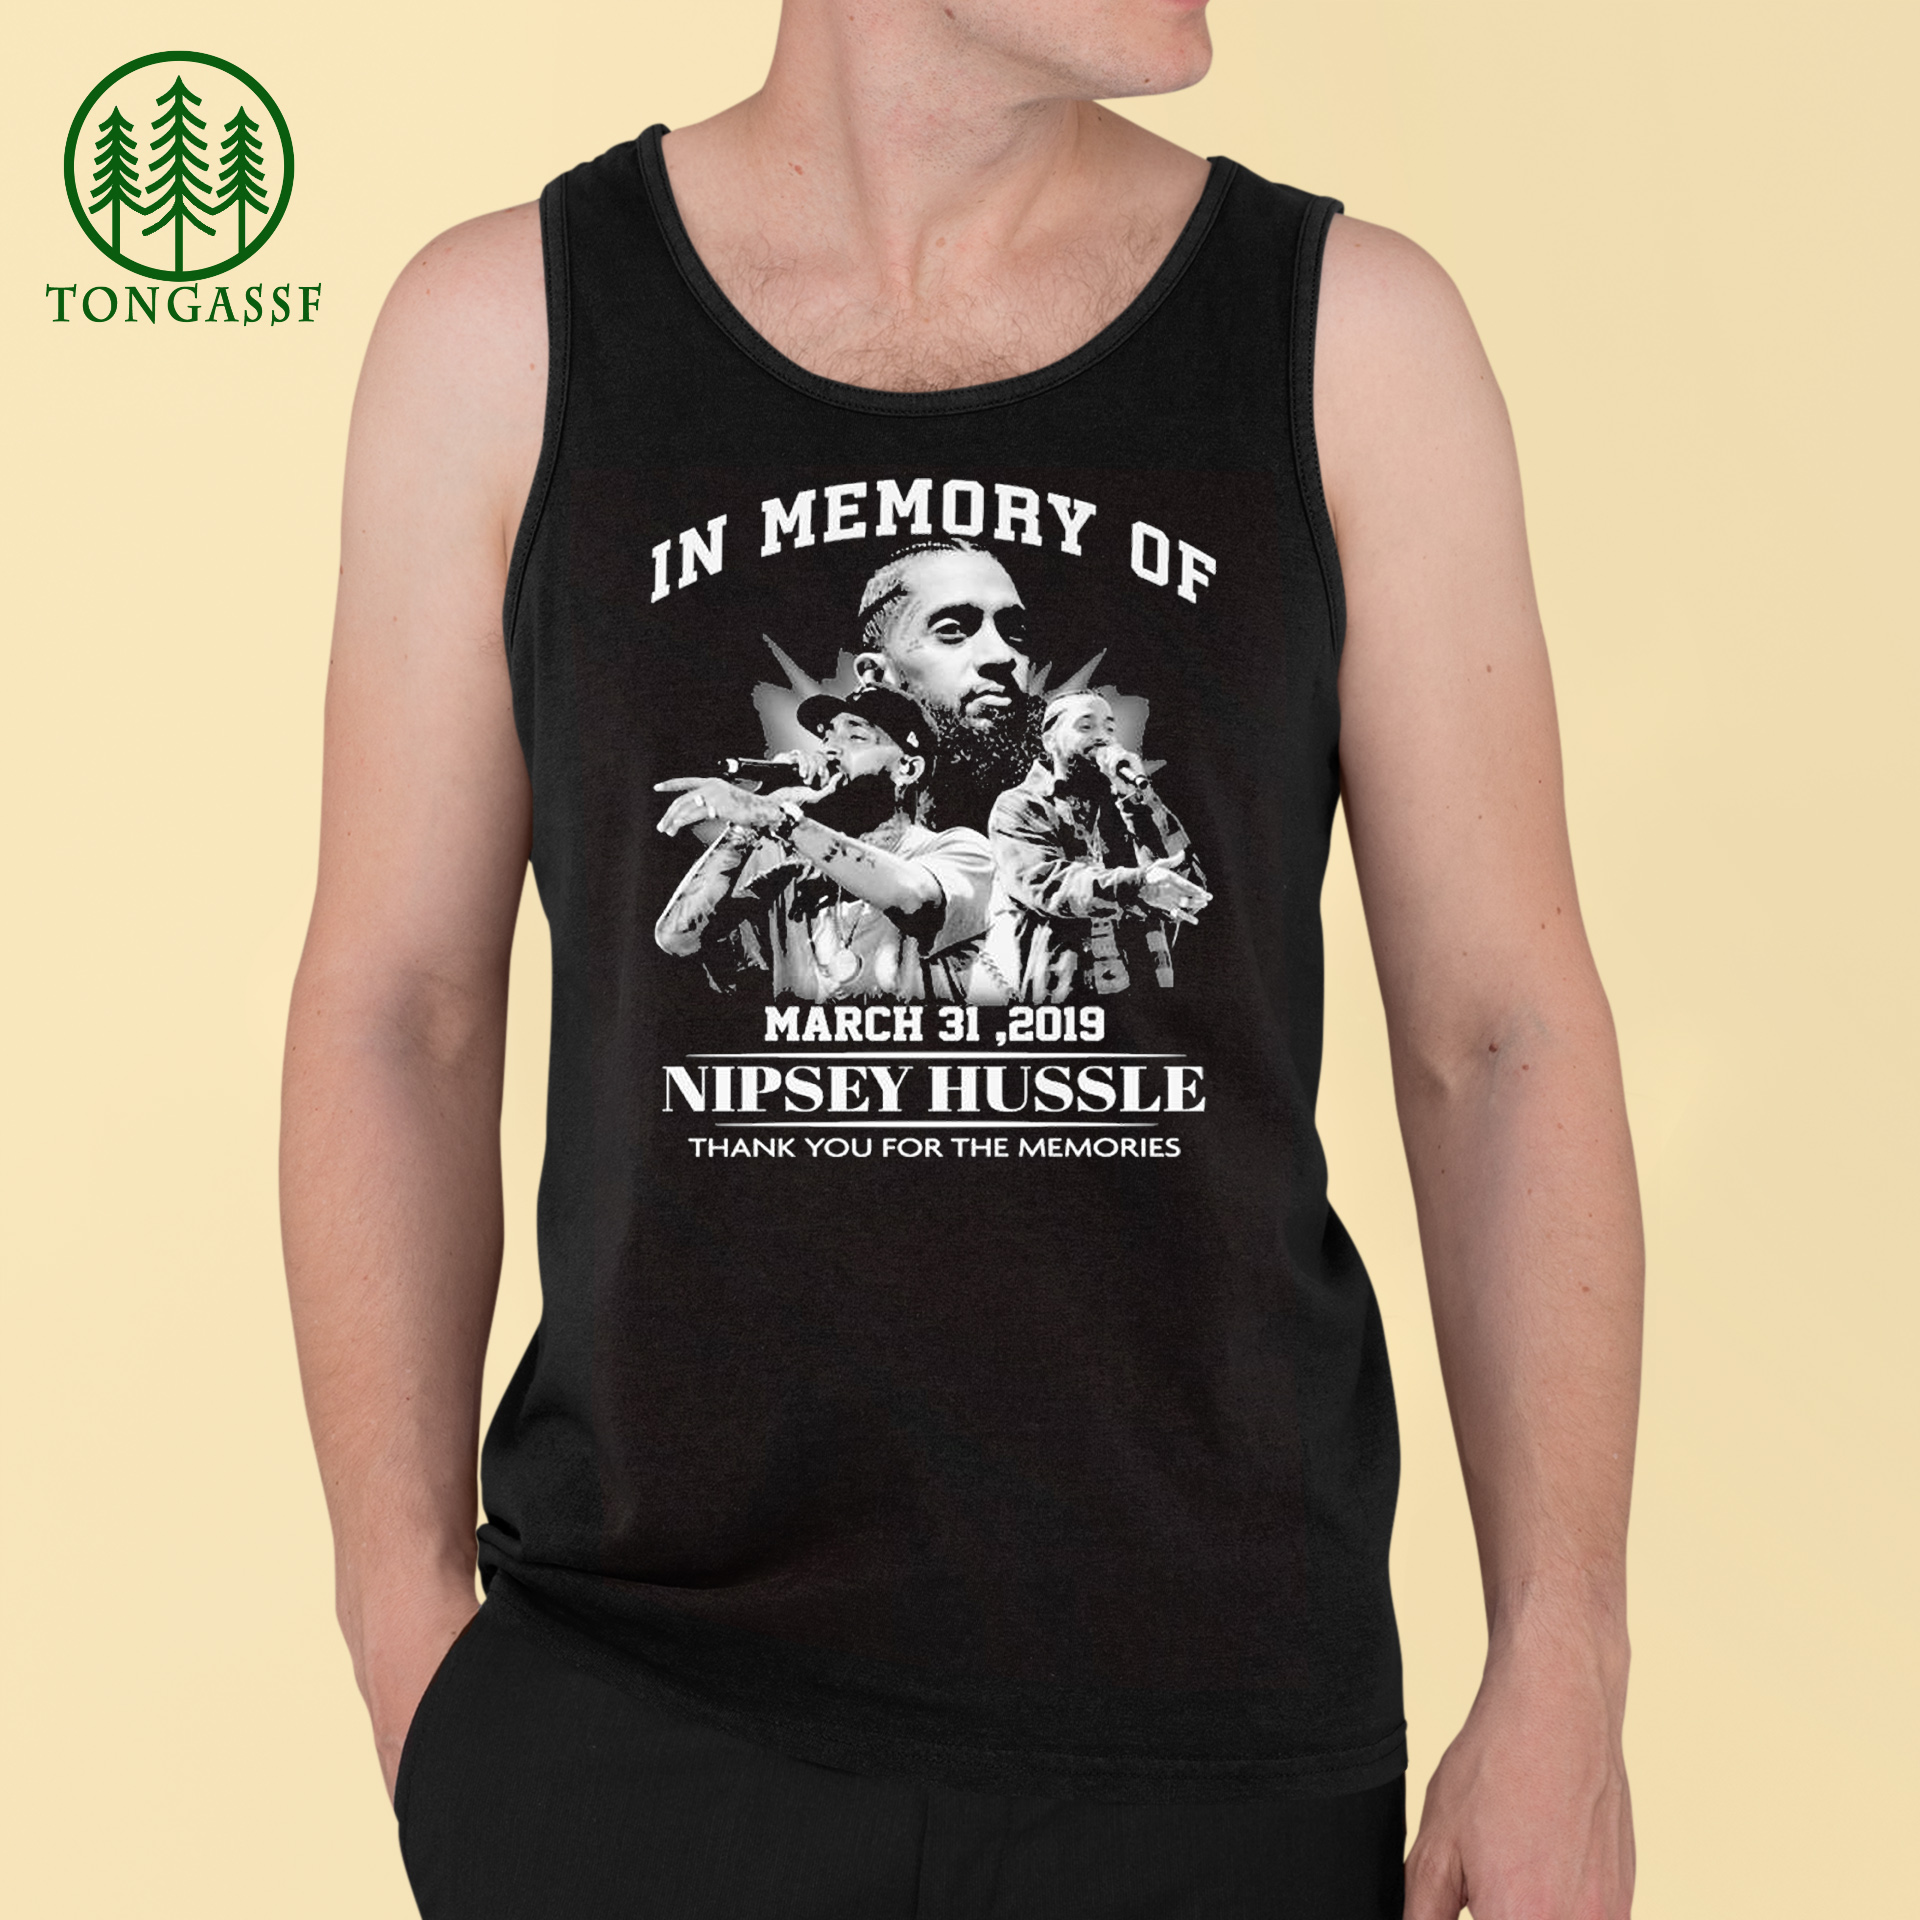 In memory of March 31 2019 Nipsey Hussle thank you for the memories shirt